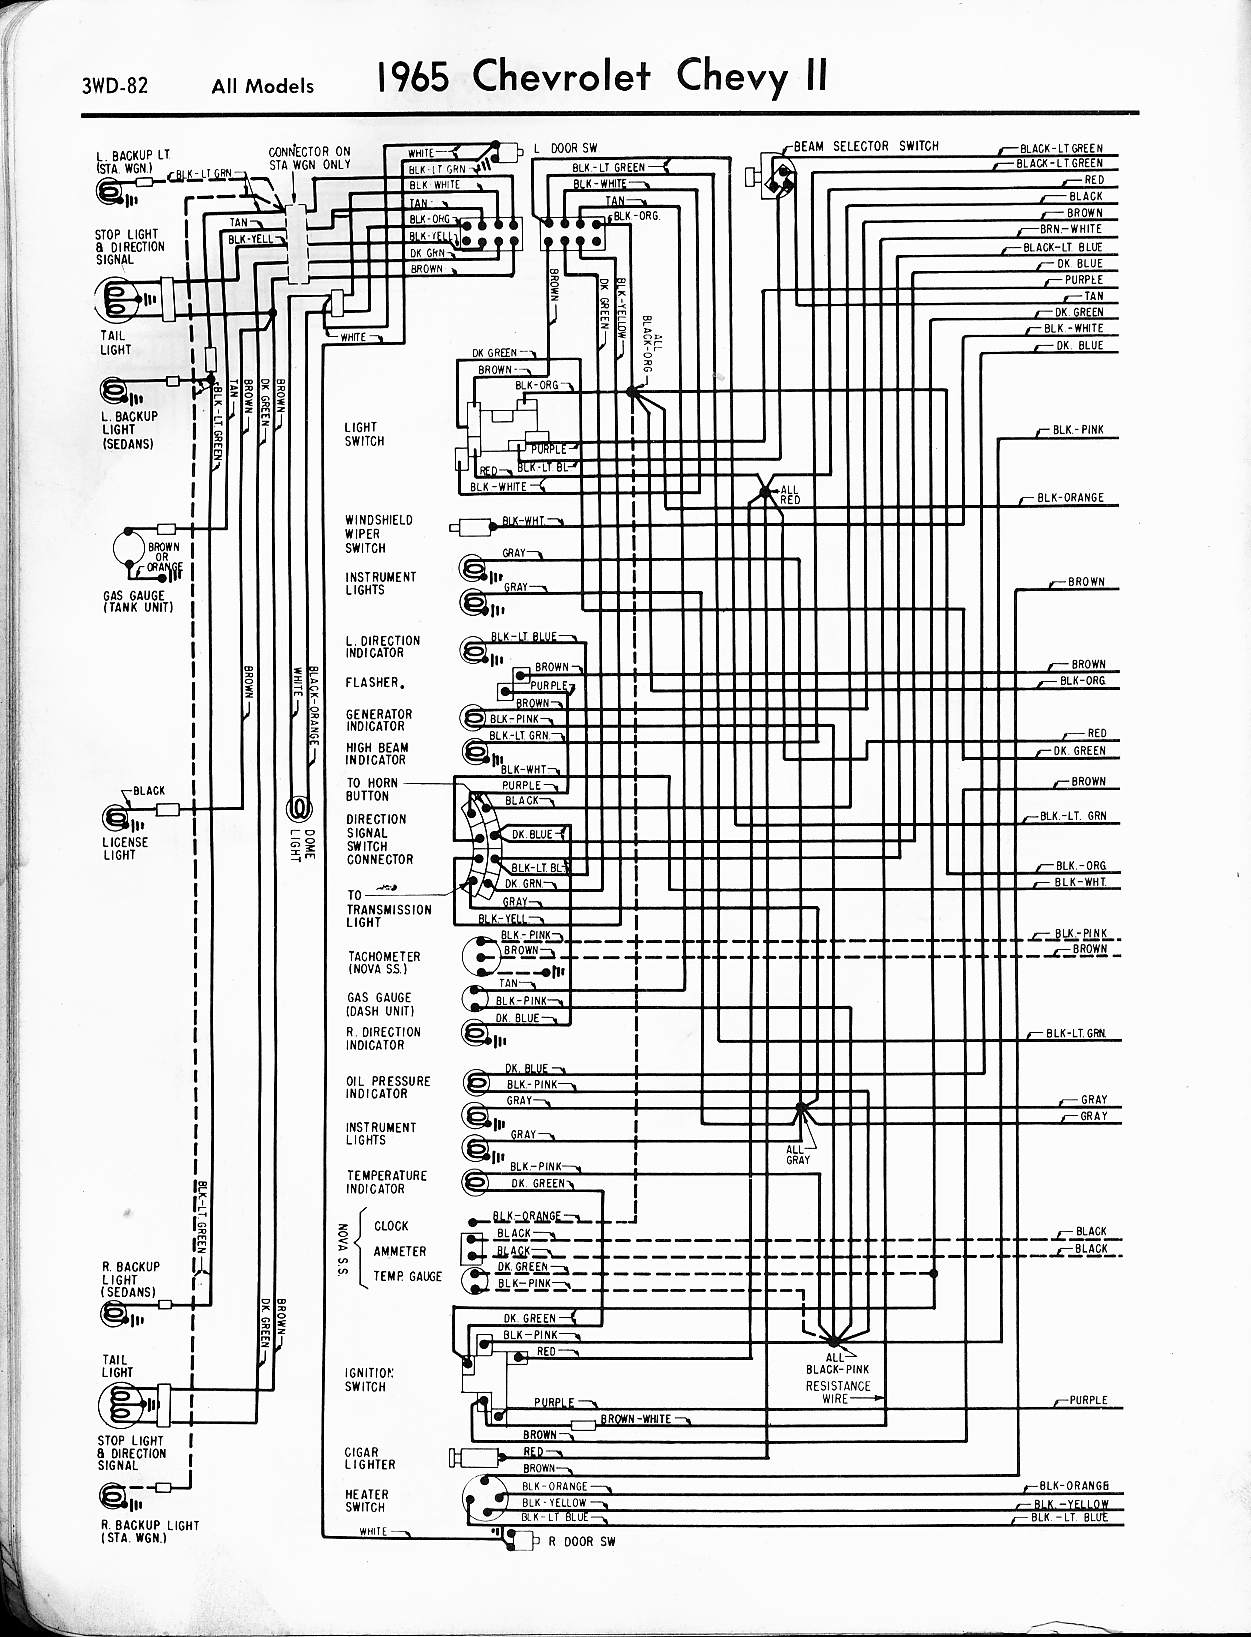 MWireChev65_3WD 082 chevrolet wiring schematics chevrolet wiring diagrams instruction chevy wiring schematics at mifinder.co